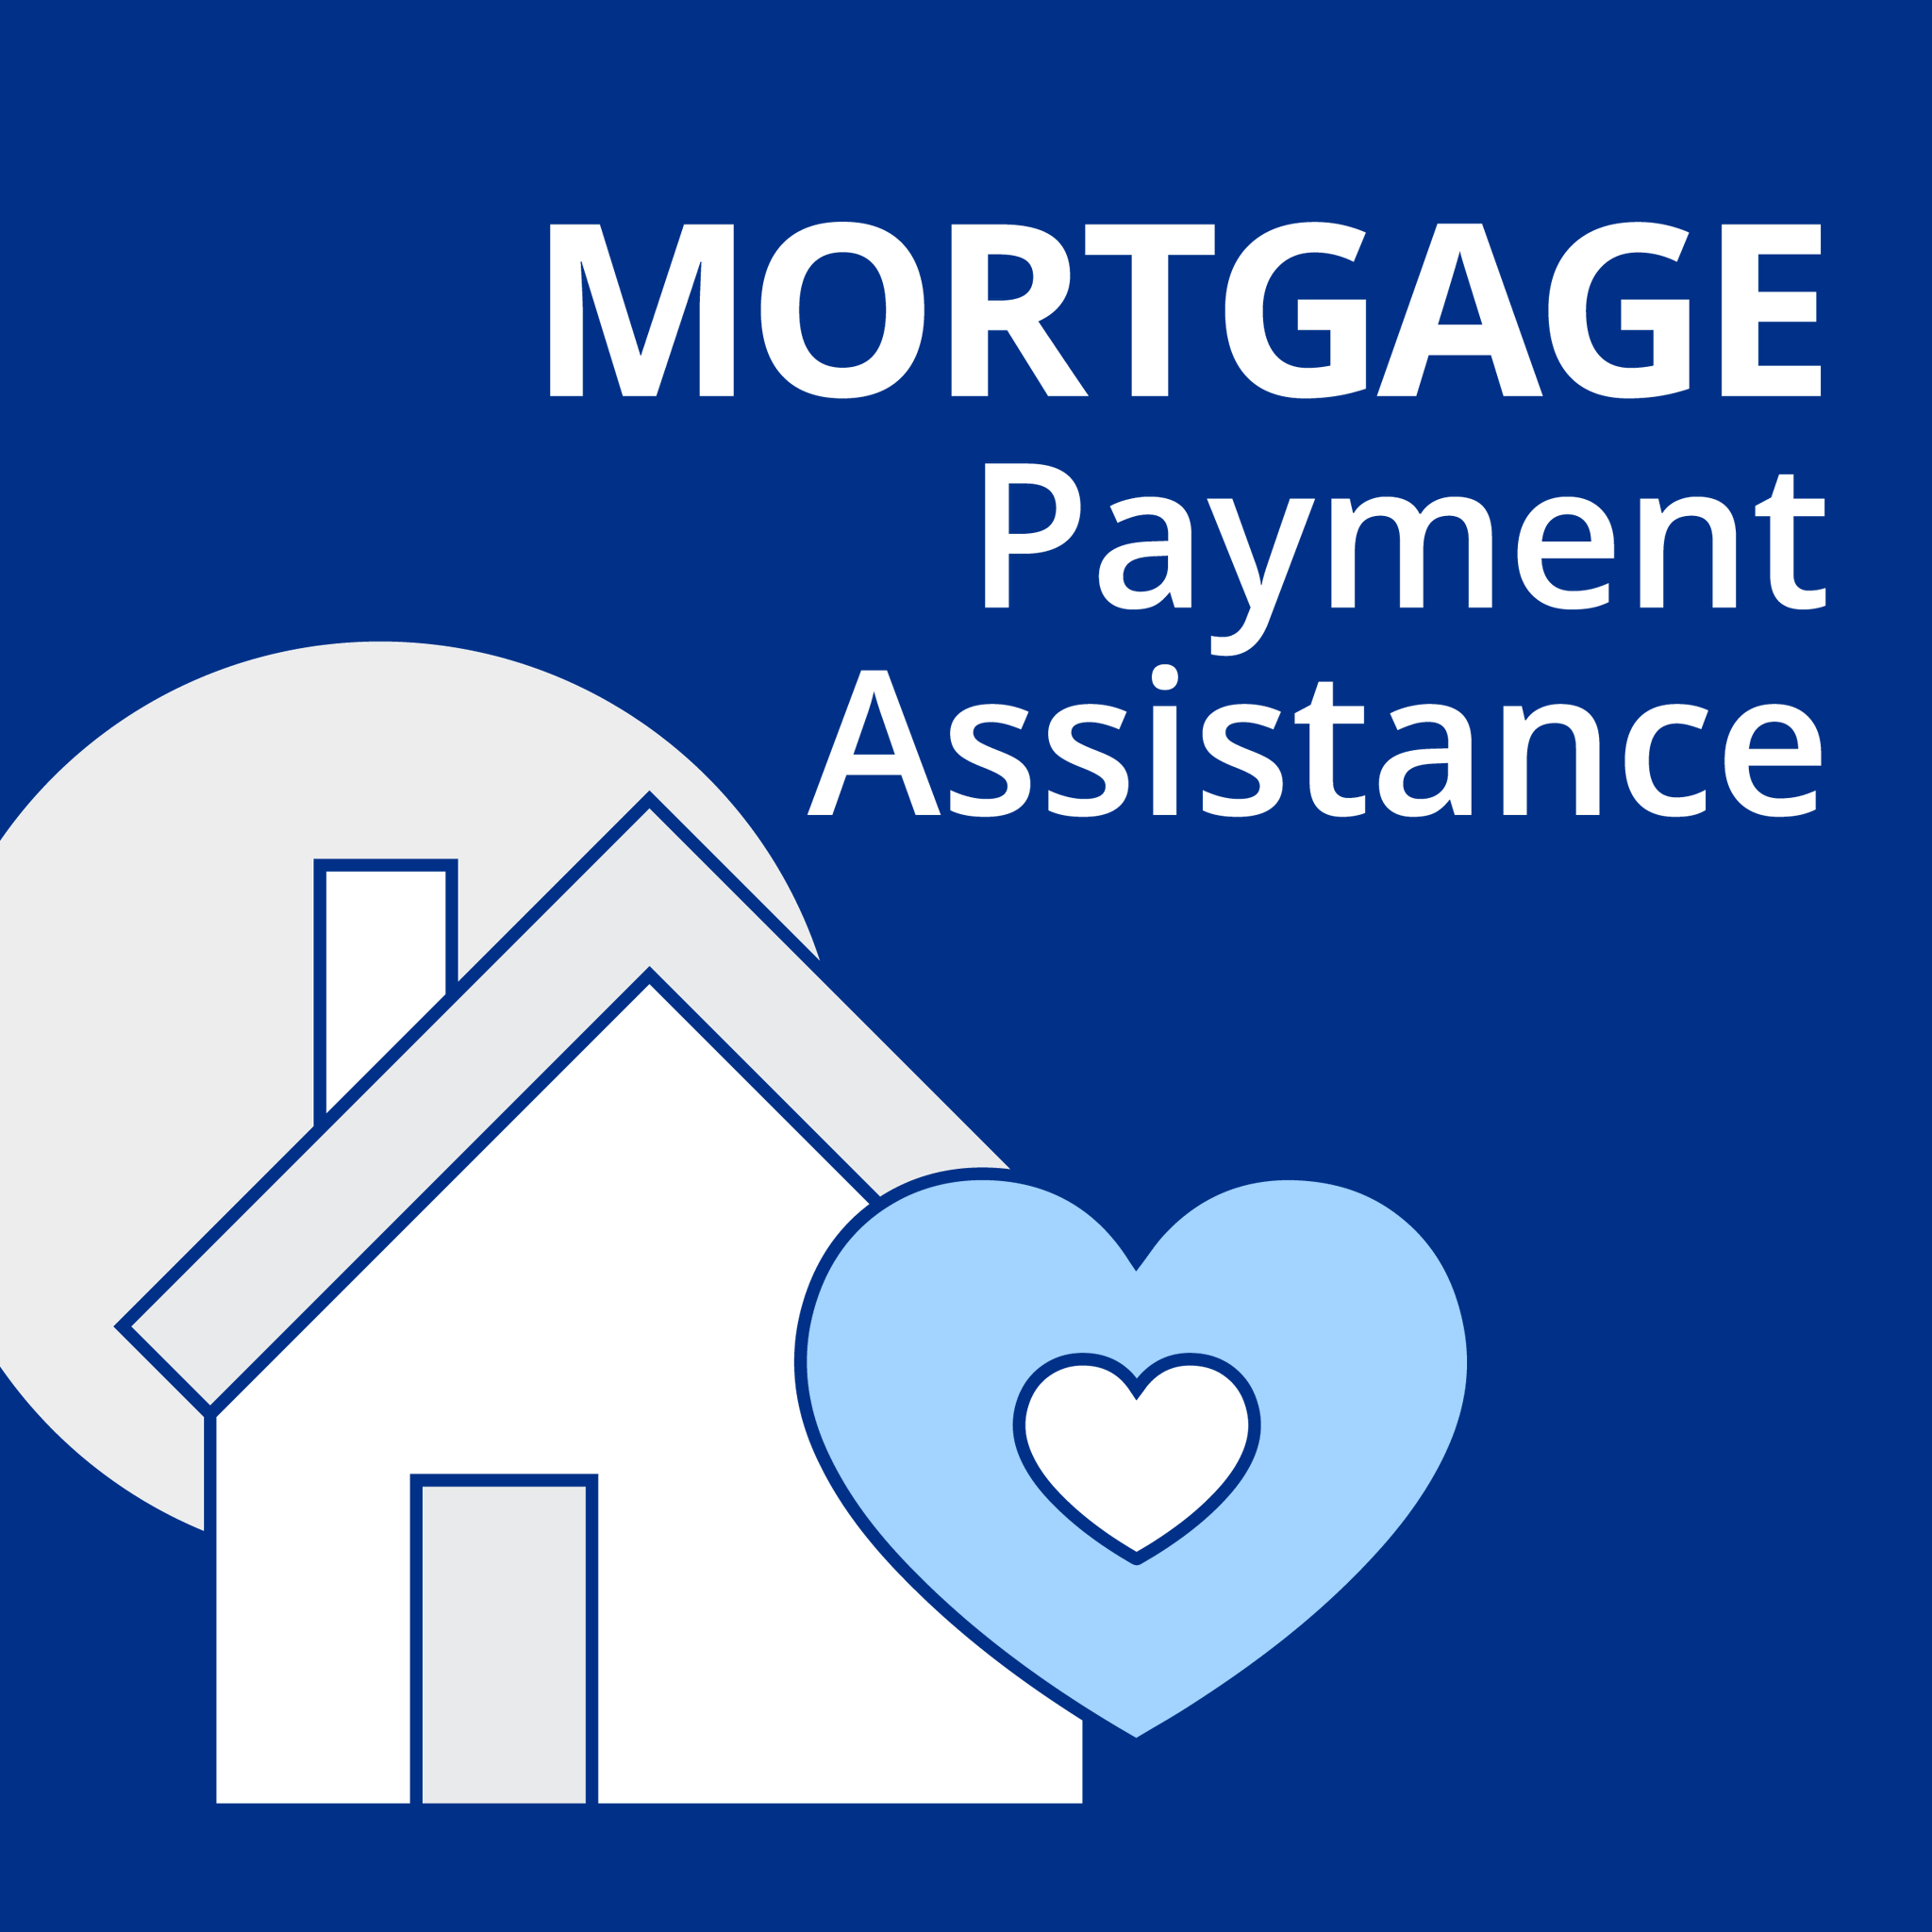 Security Service On Twitter If You Re Concerned About Your Mortgage Payment We Have Payment Relief Options That May Be Available To You Learn More At Https T Co 12aepeoapz Https T Co 9mwydangca